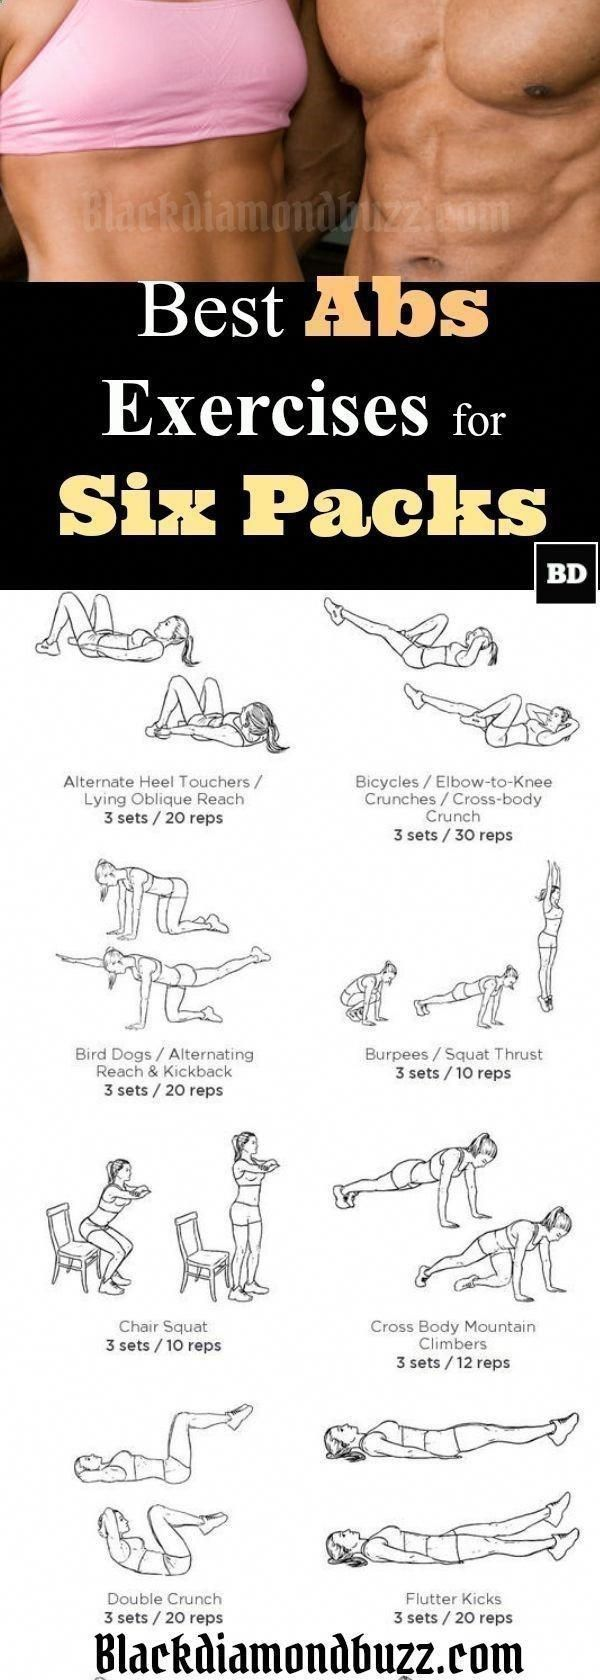 Belly Fat Workout - Belly Fat Workout - Best Abs Exercises #Bellyfatburner